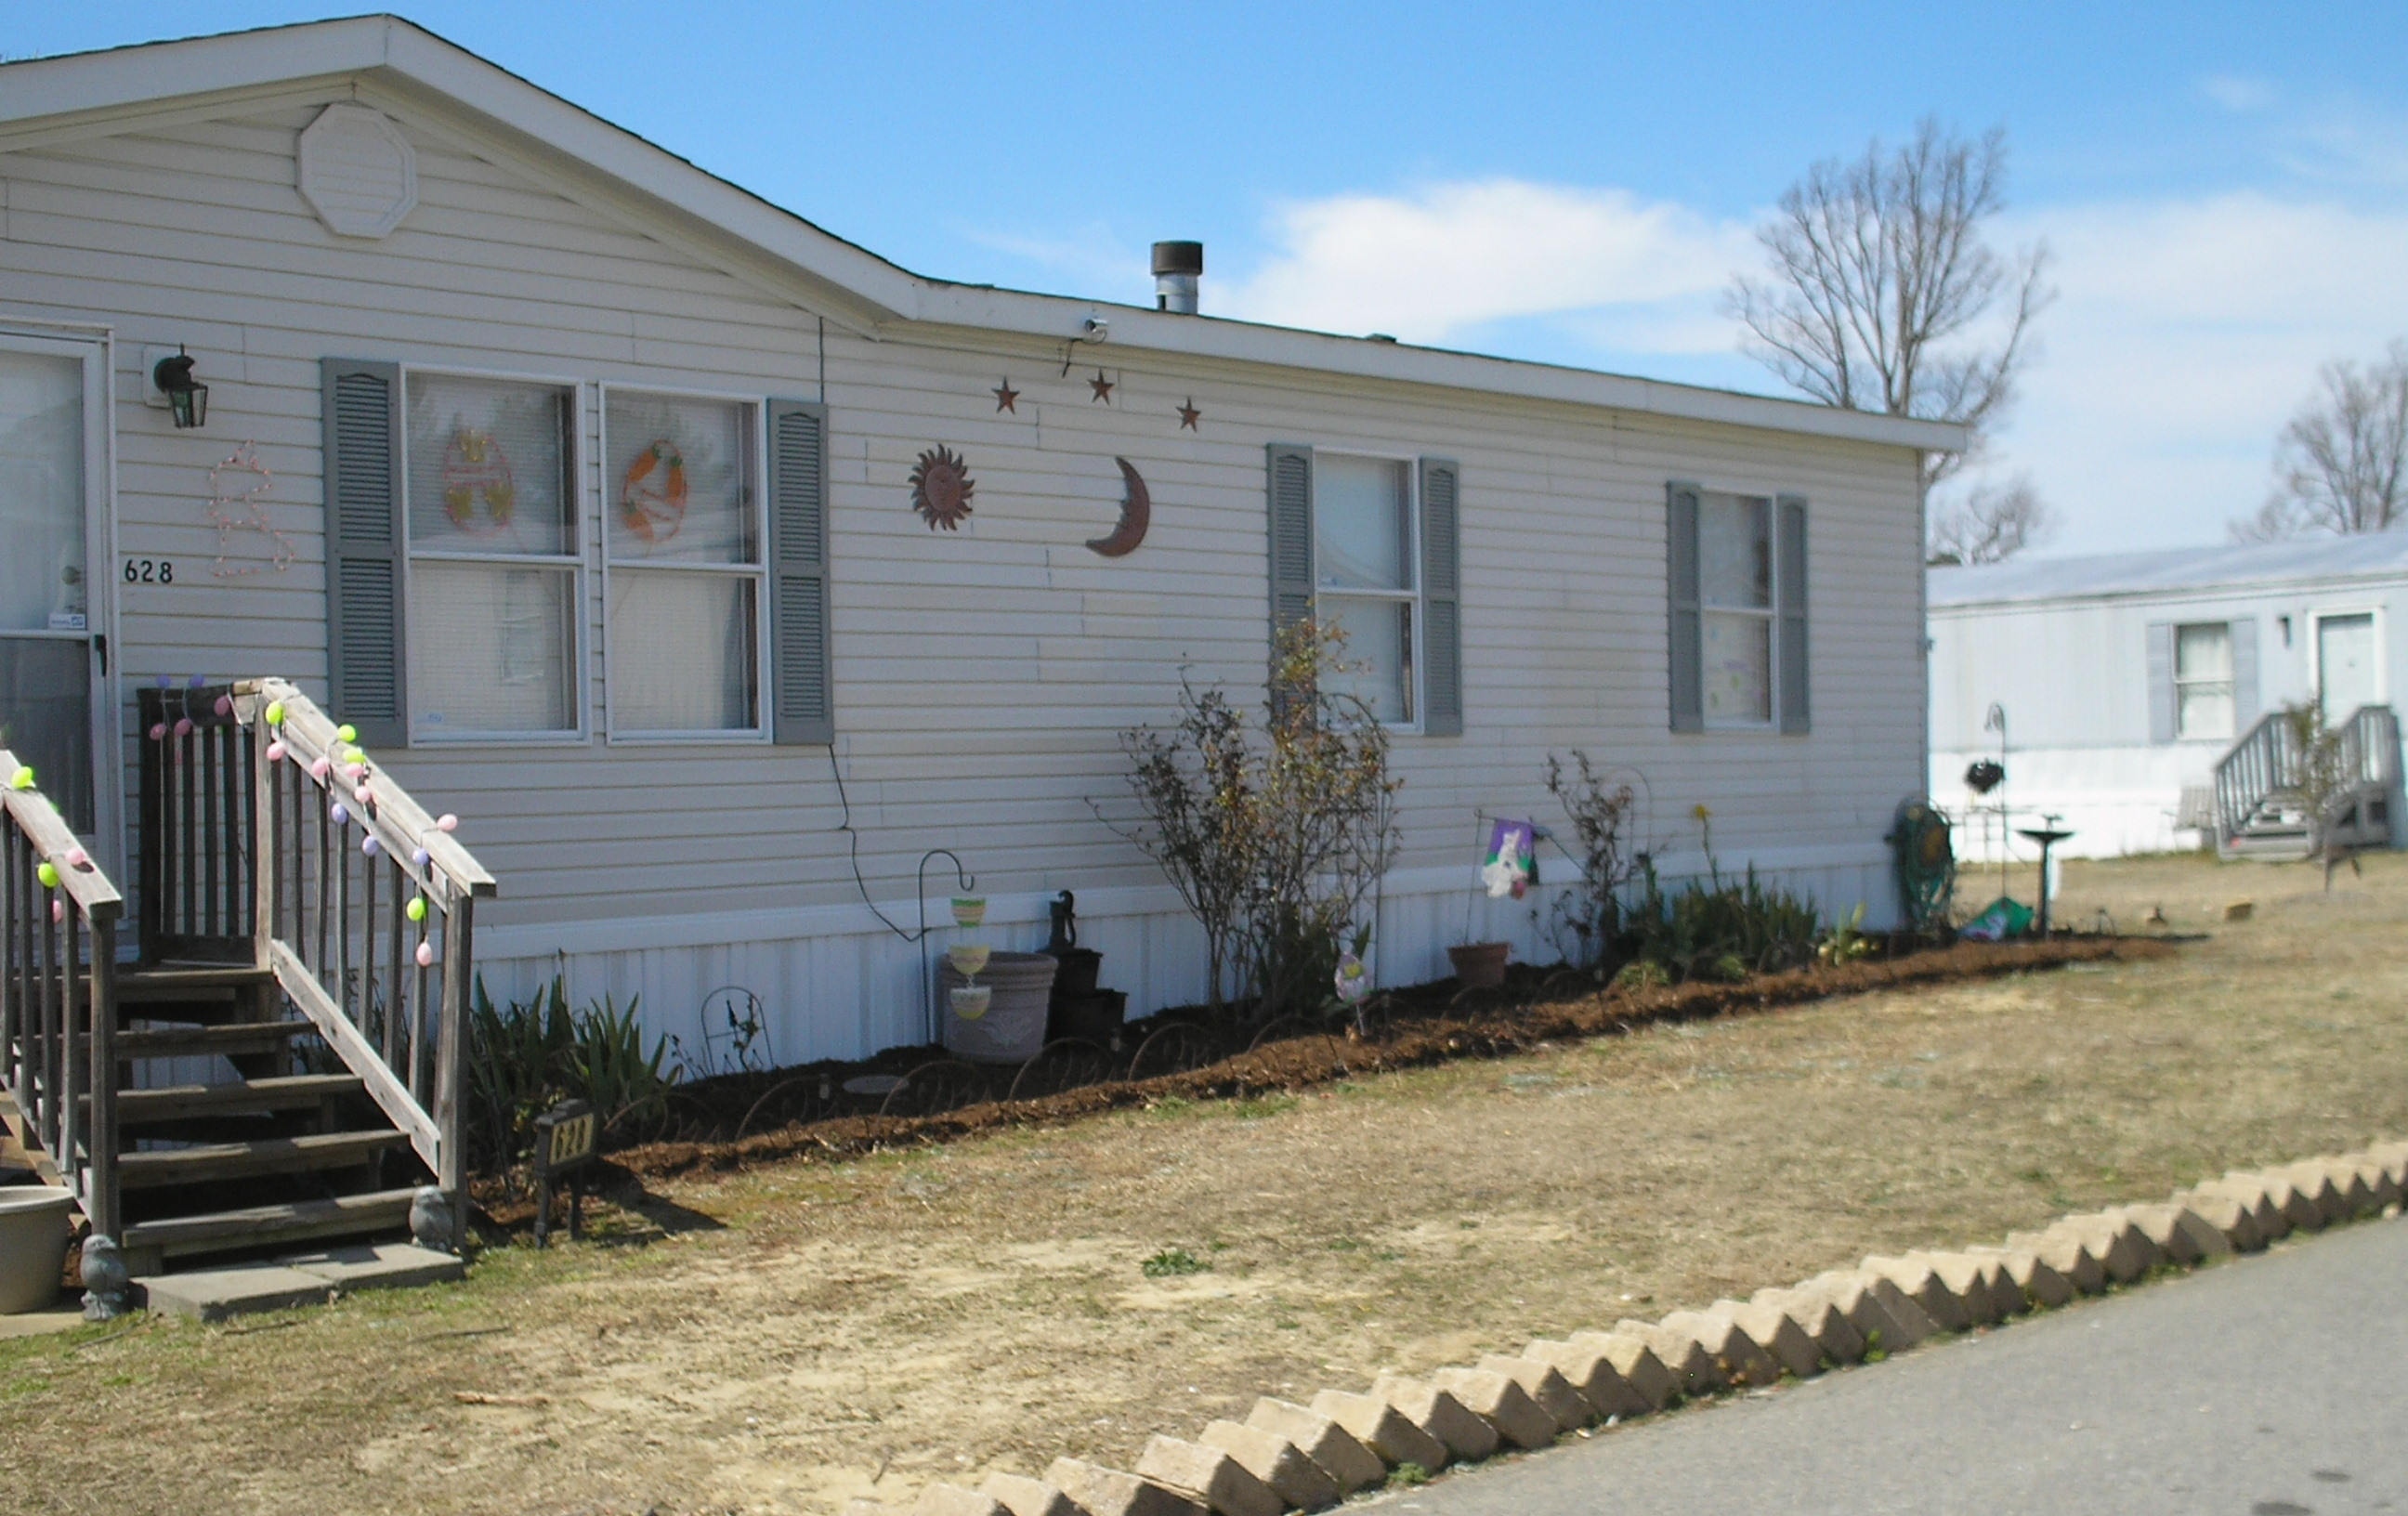 Malibu Mobile Home With Lots Of Great Mobile Home: Pictures Of Homes & Lots